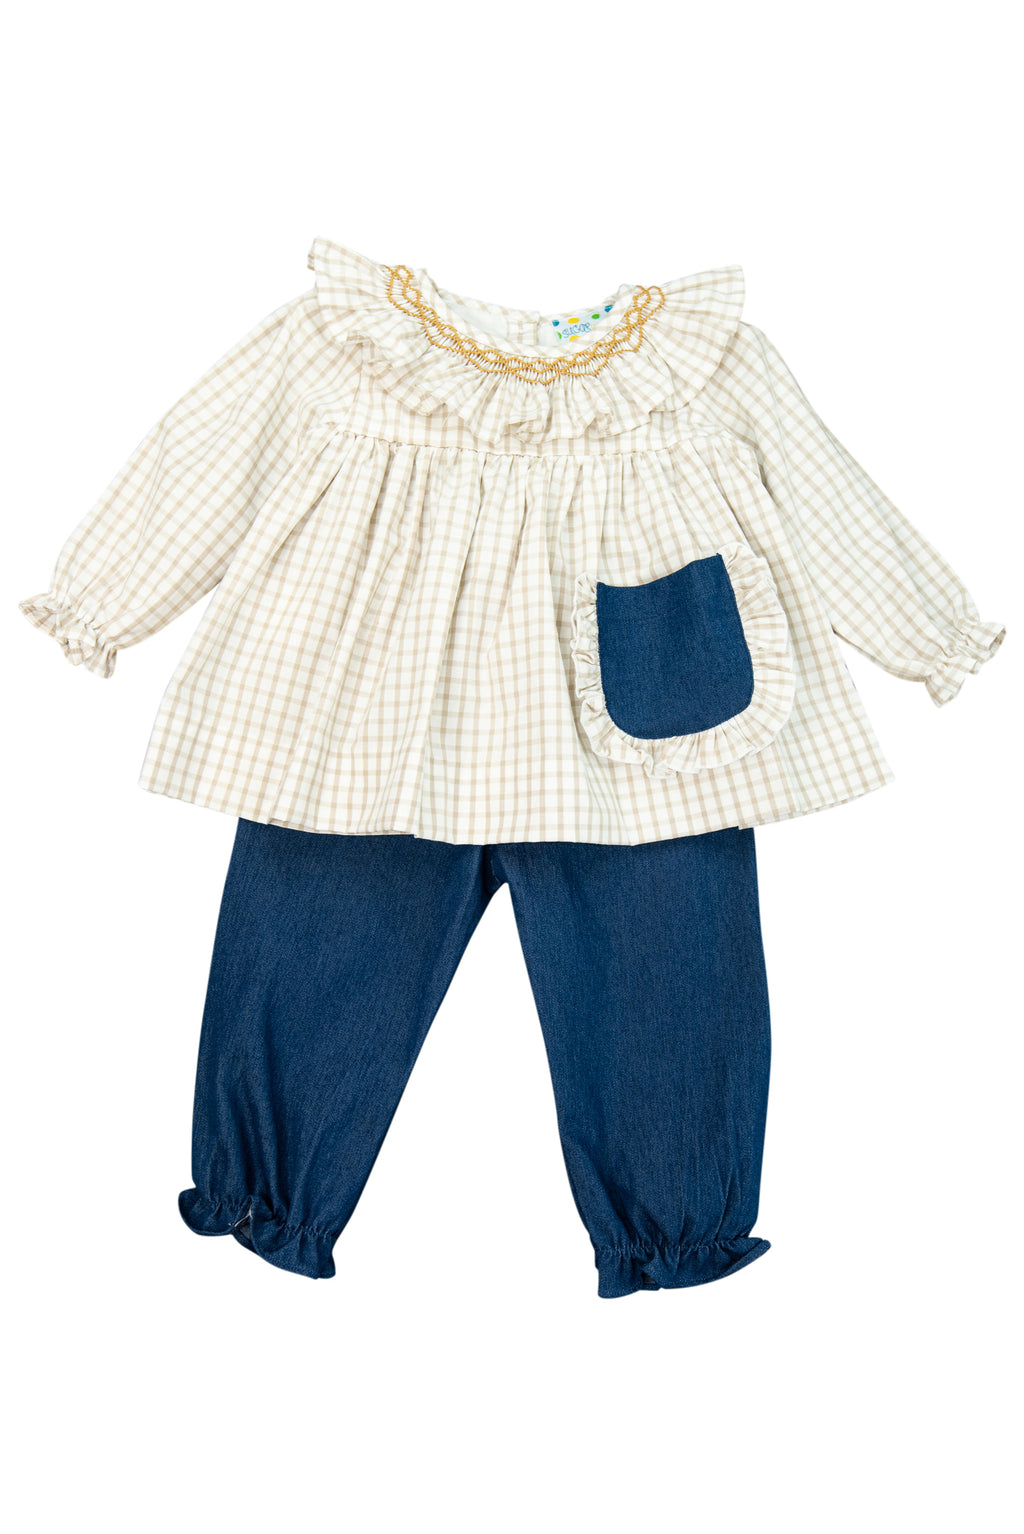 Girls Denim French Knot Initial Pant Set